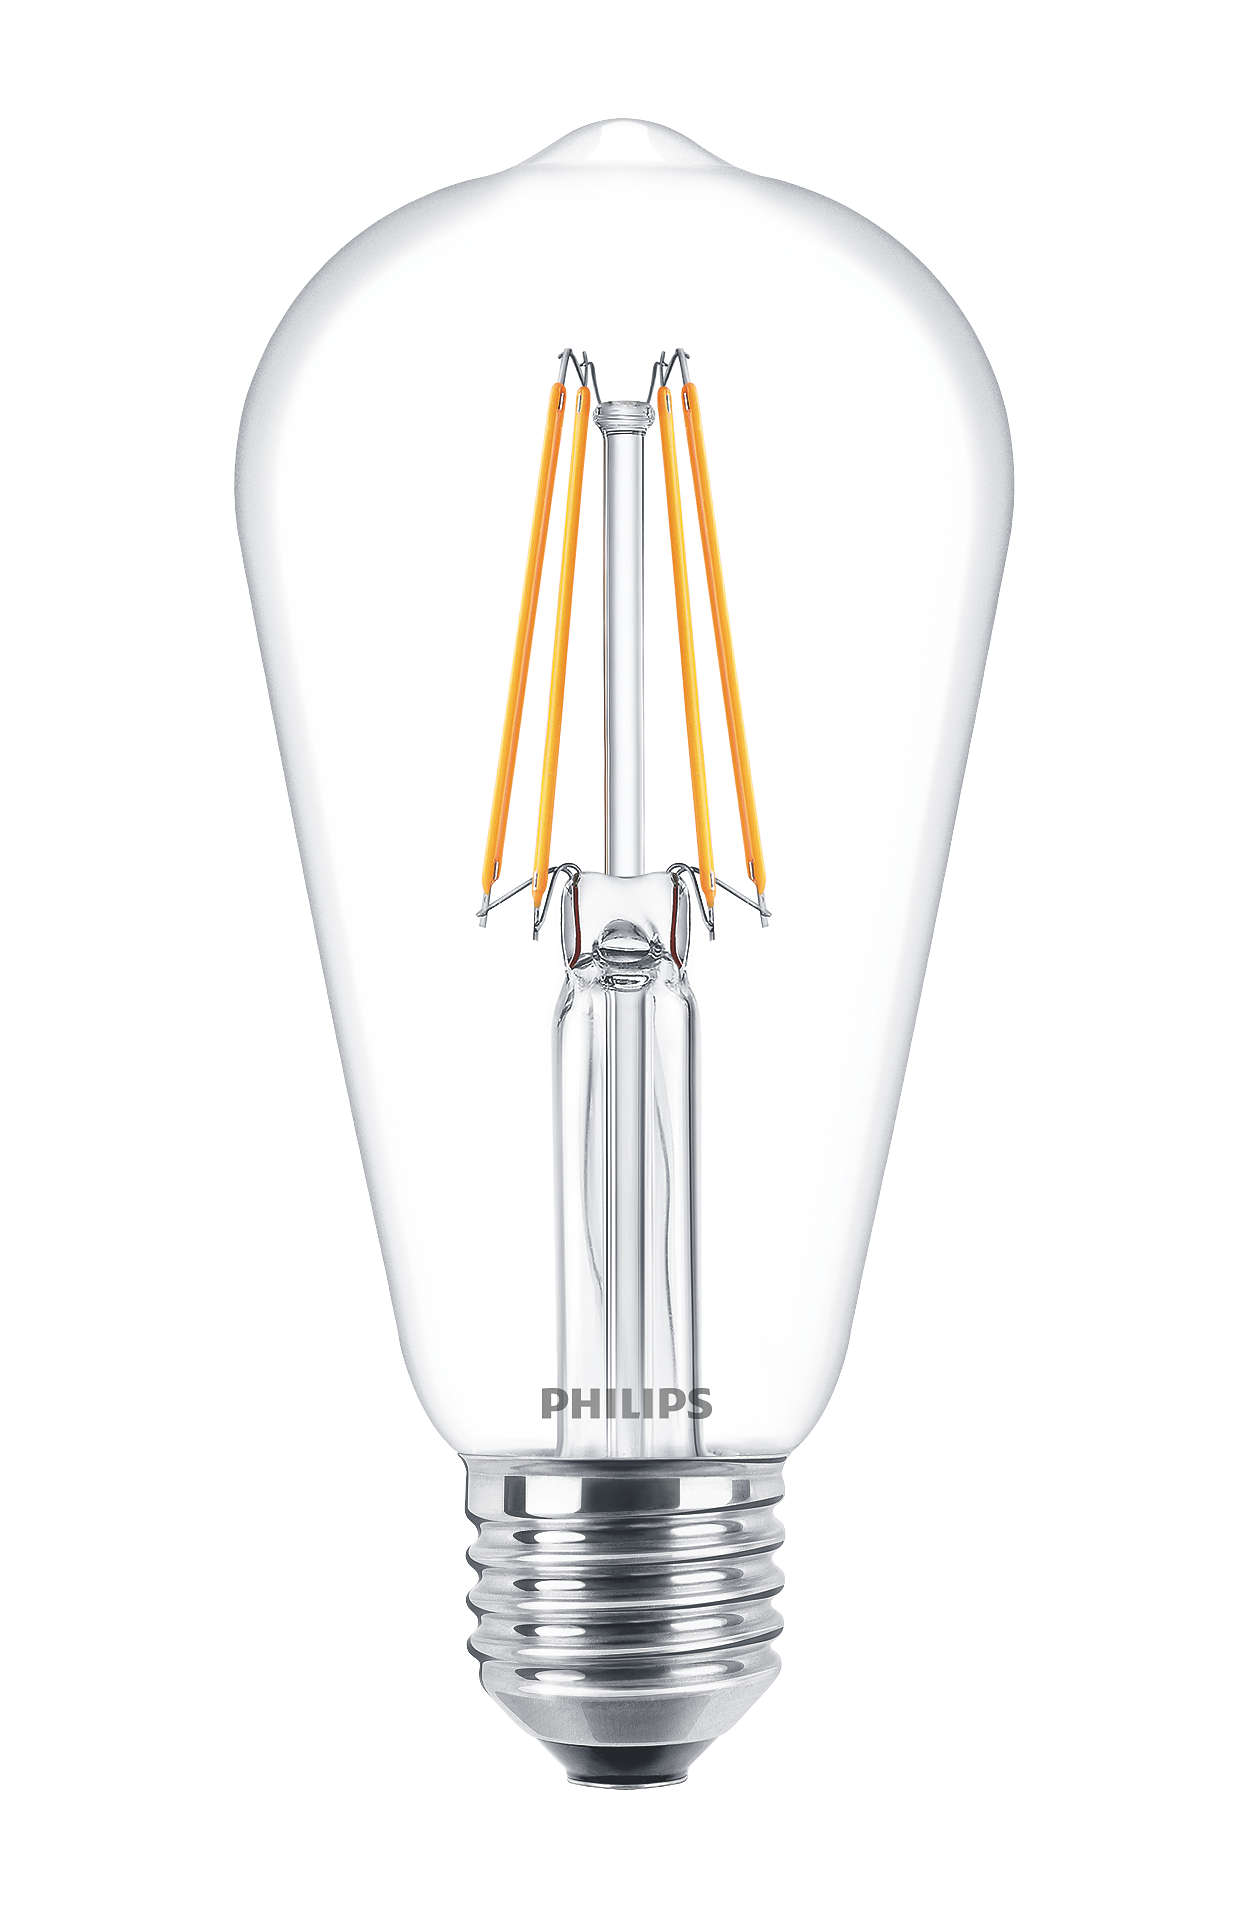 PHILIPS FILAMENT Classic LEDbulb ND 6-60W E27 827 ST64 retro LED žárovka